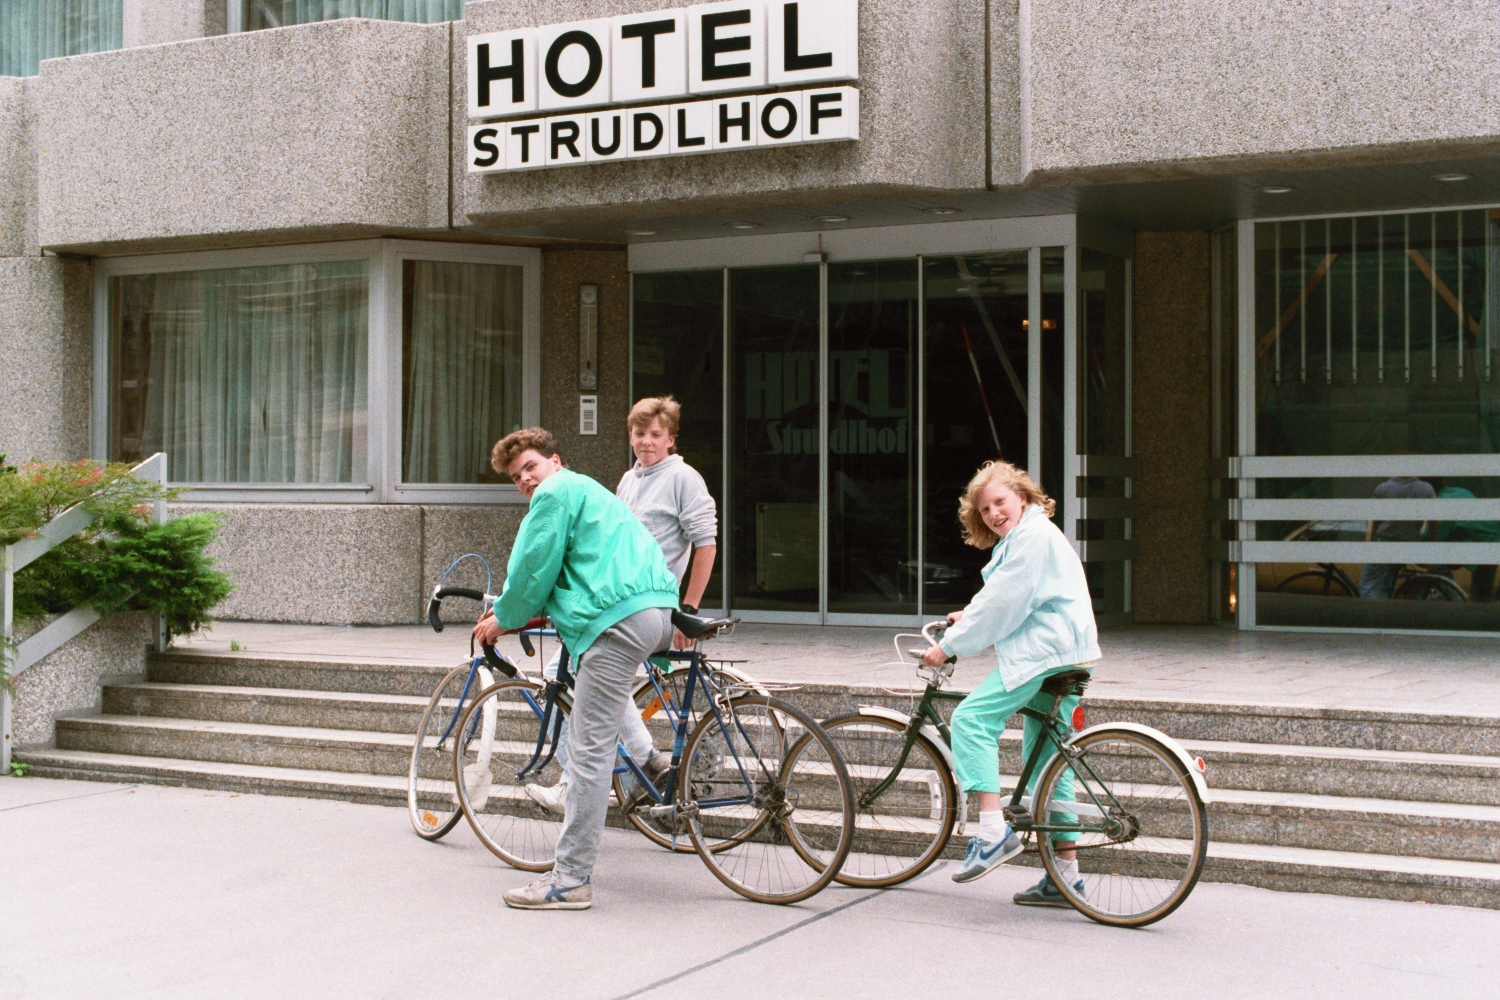 Matt Shearer, Amy Shearer and Russel Shearer at Hotel Strudlhof in Vienna